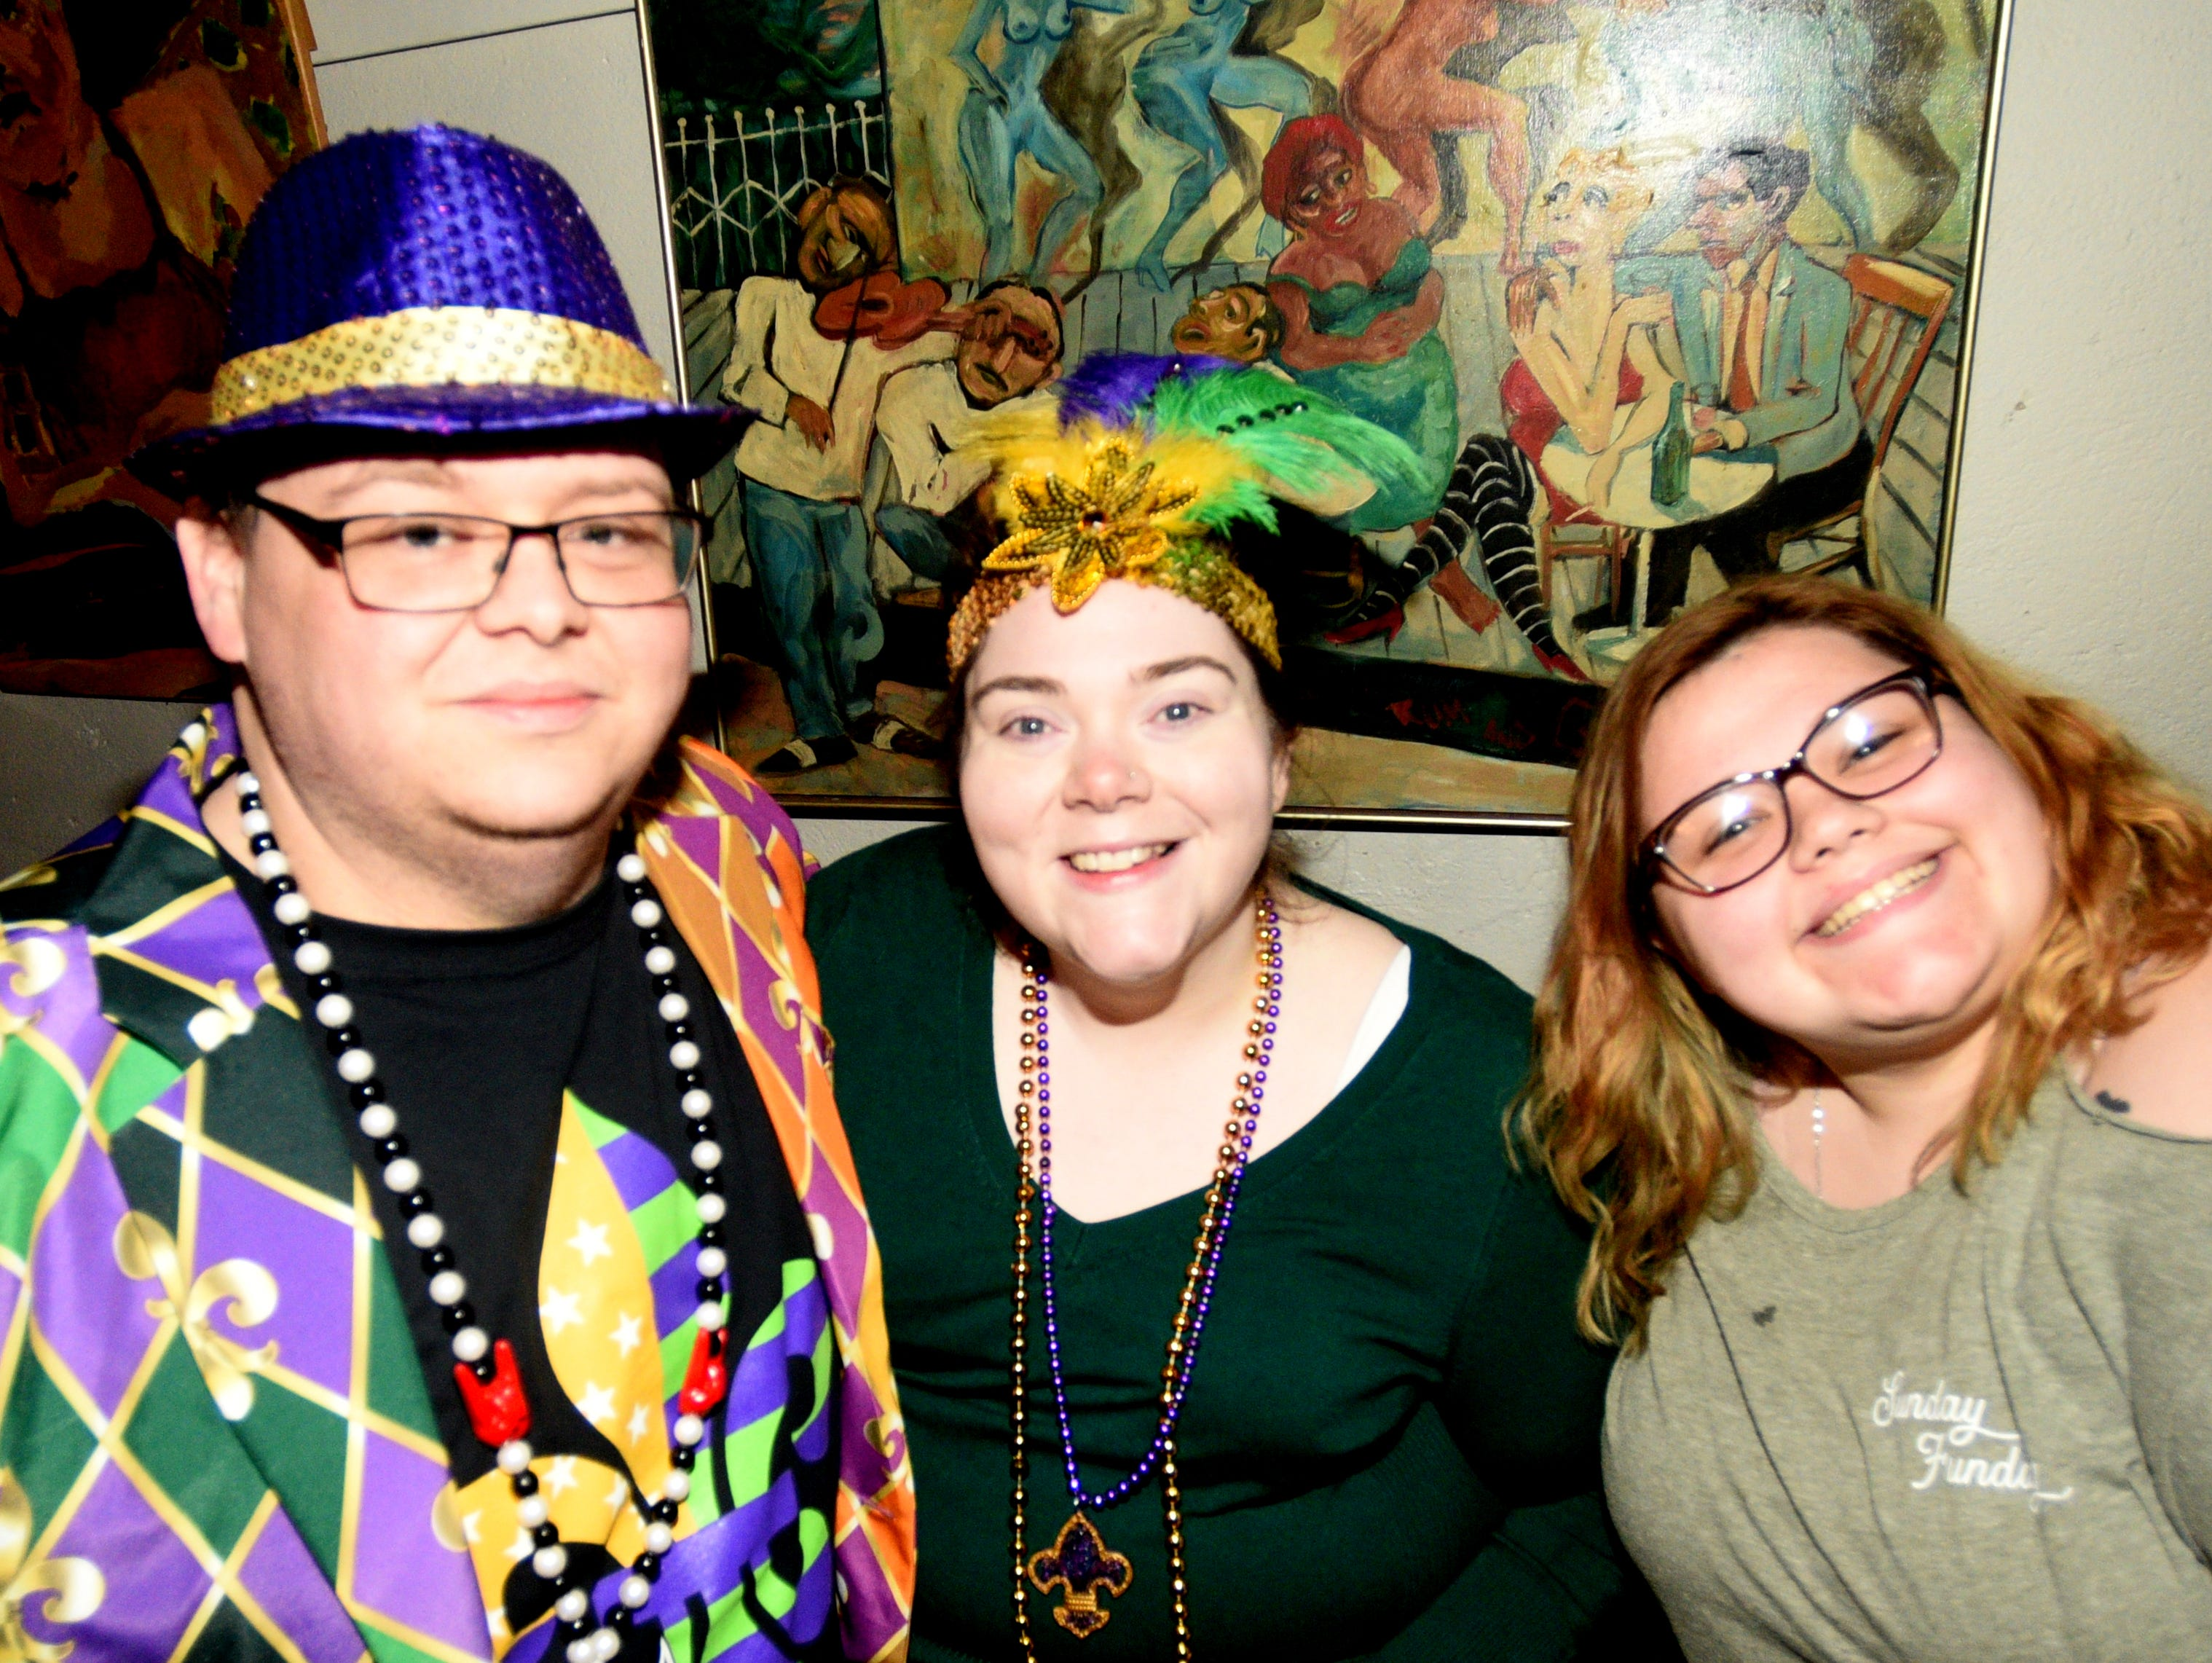 Fat Tuesday Walking Parade (moved indoors because of weather) Tuesday evening, March 5, 2019, at 624 Commerce Street in downtown Shreveport.